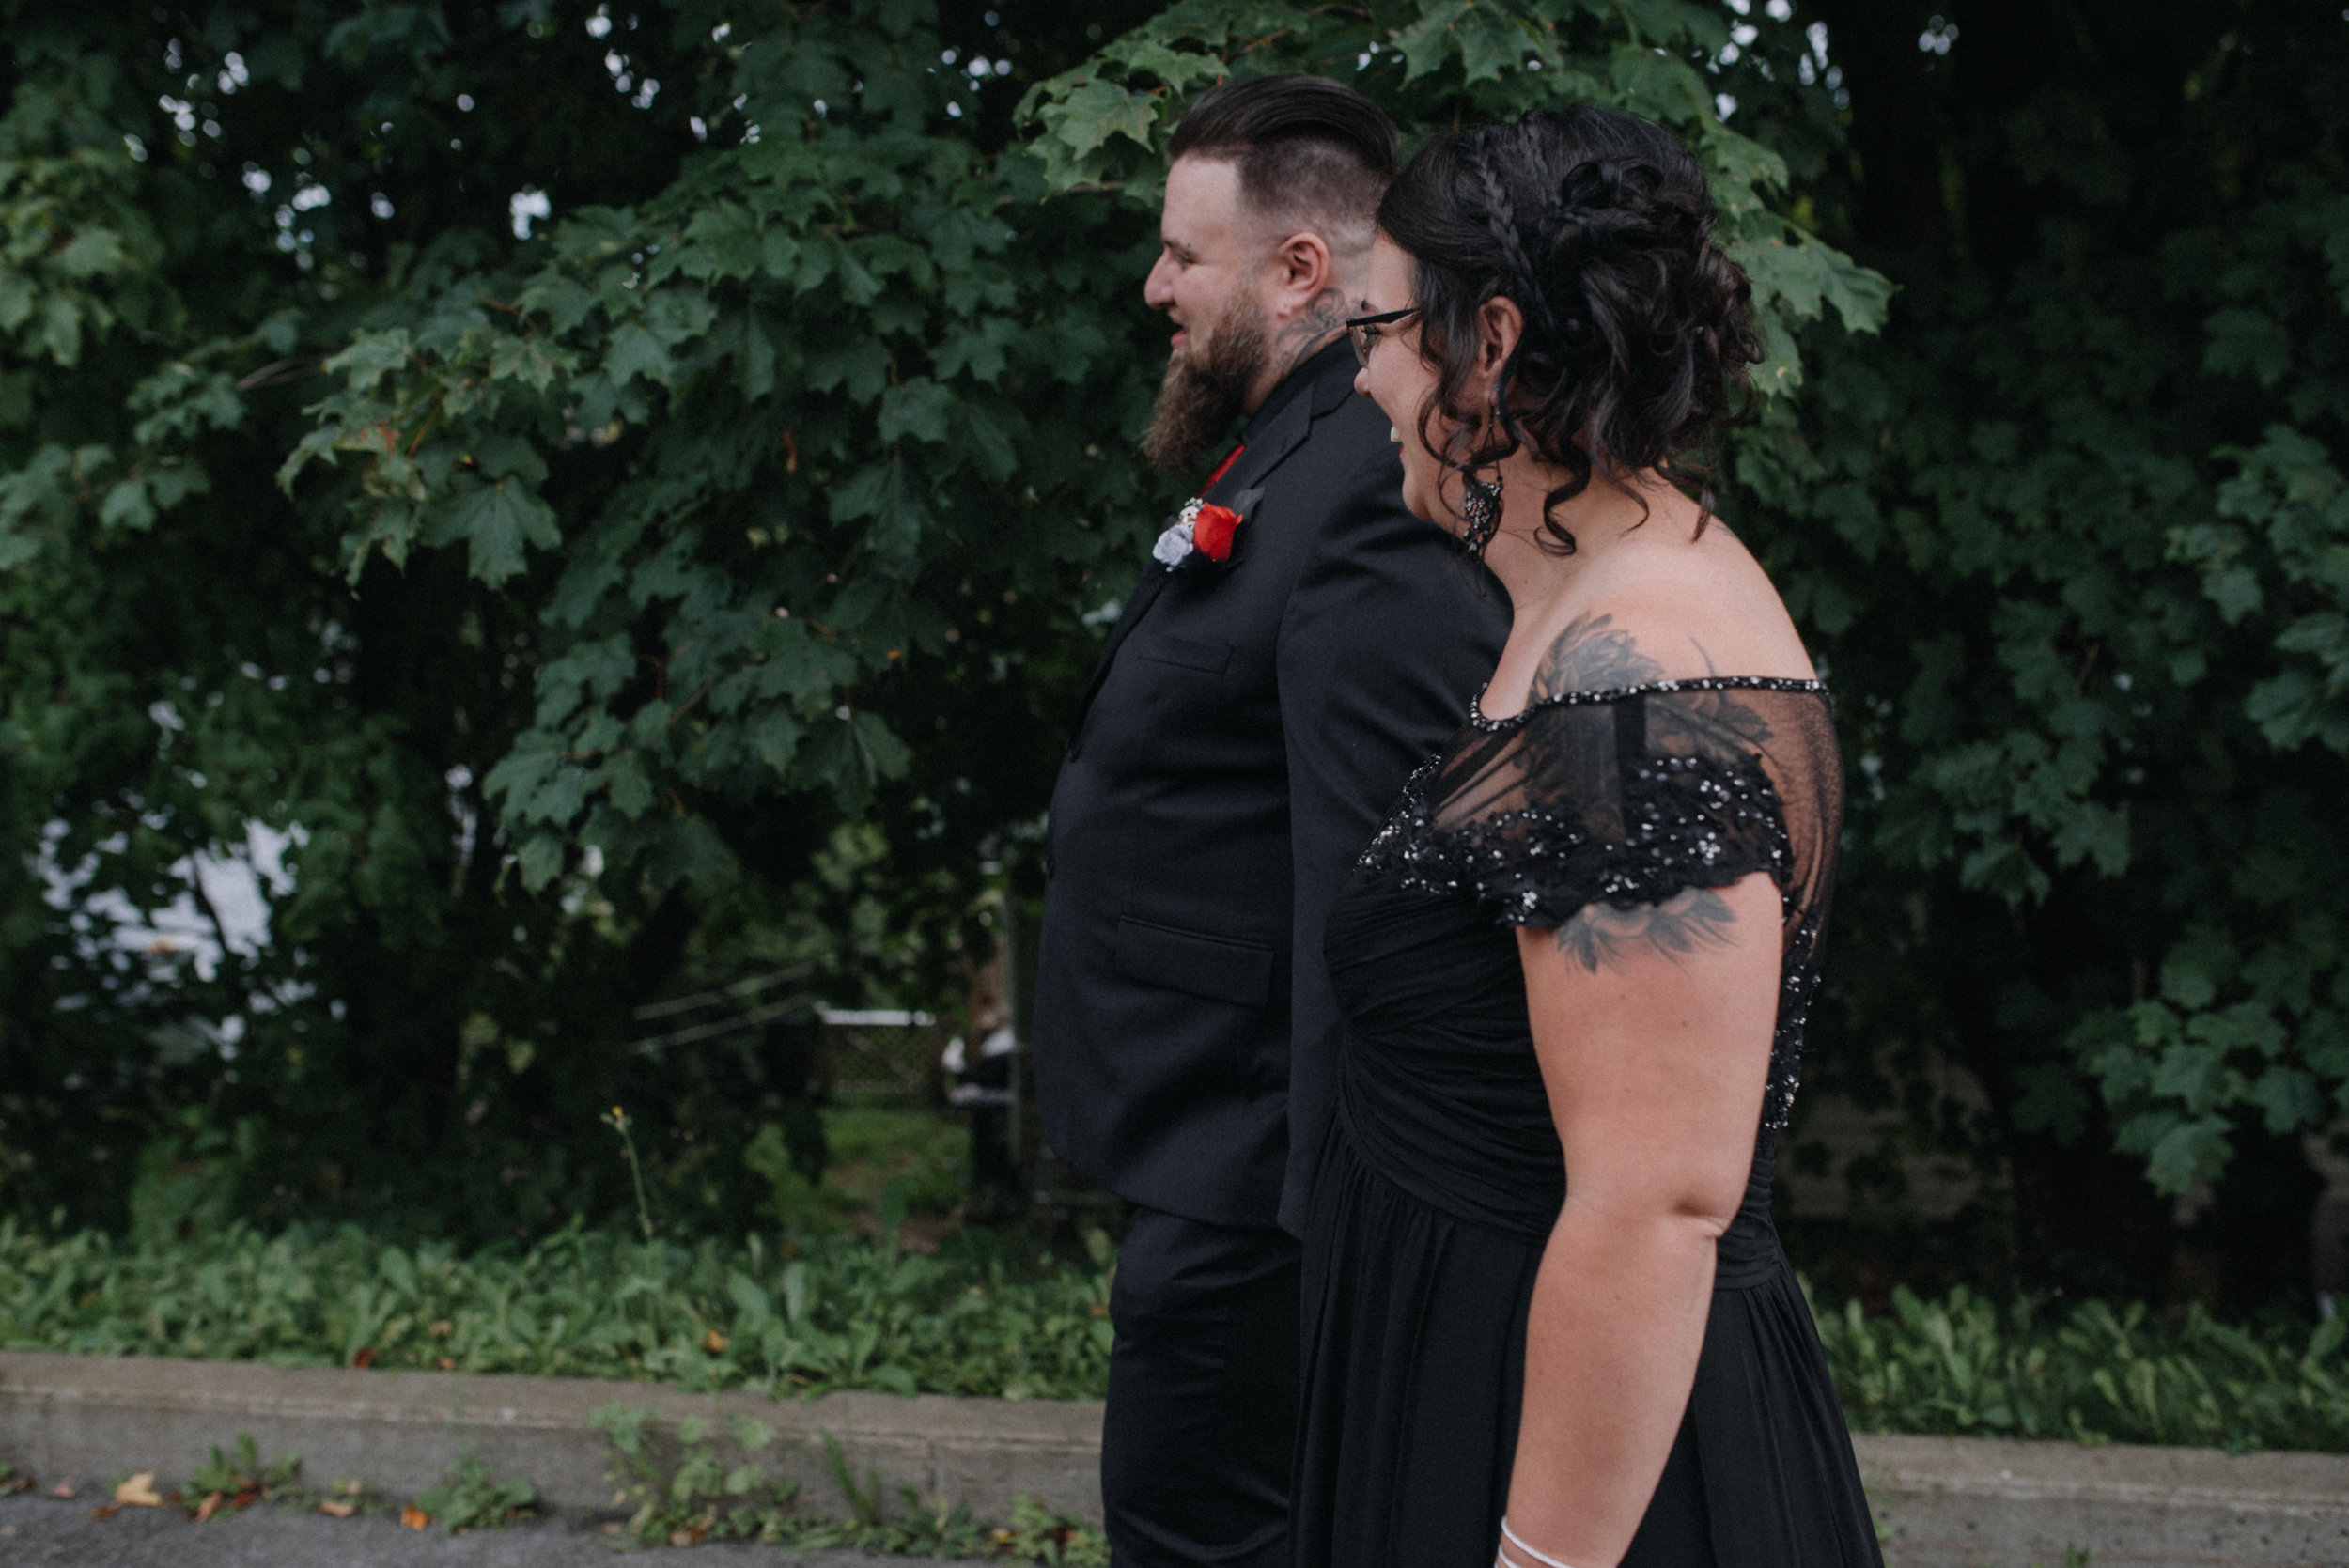 gatineau_photographe_mariage_ottawa_wedding_photographer_photography_candid_natural_moody_documentary_lifestyle (30).JPG